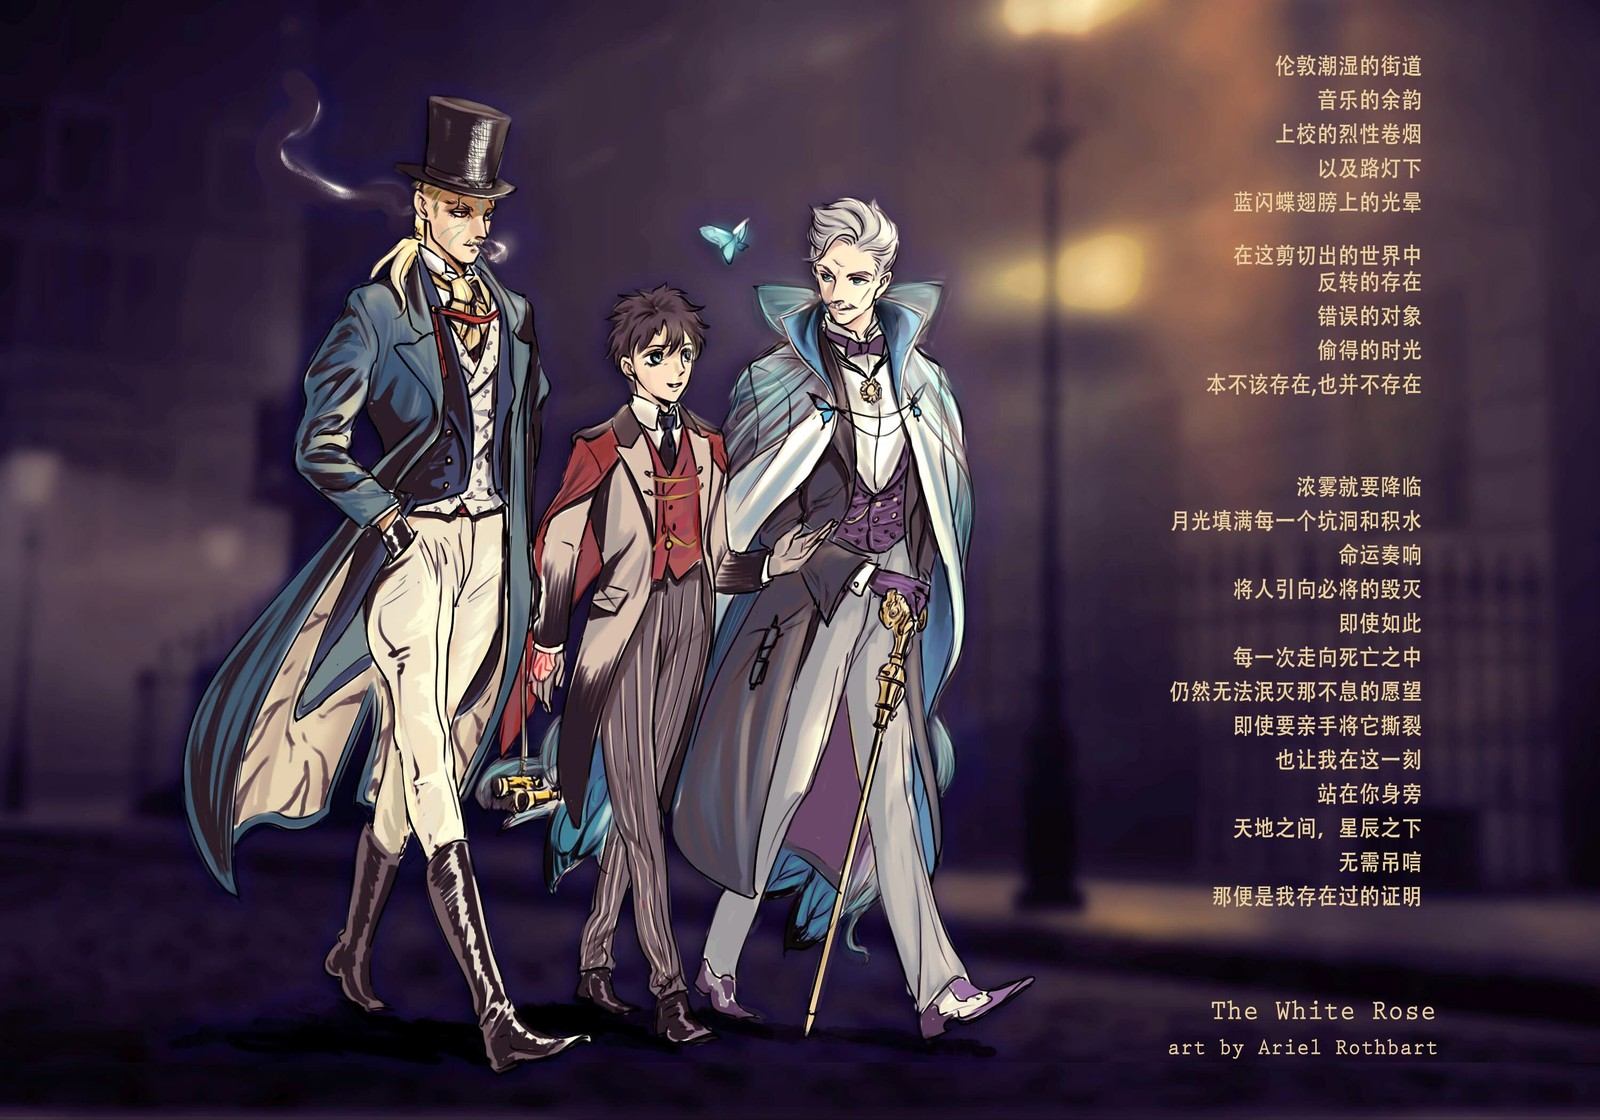 An illustration for my fan fic story written for Moriarty and Moran